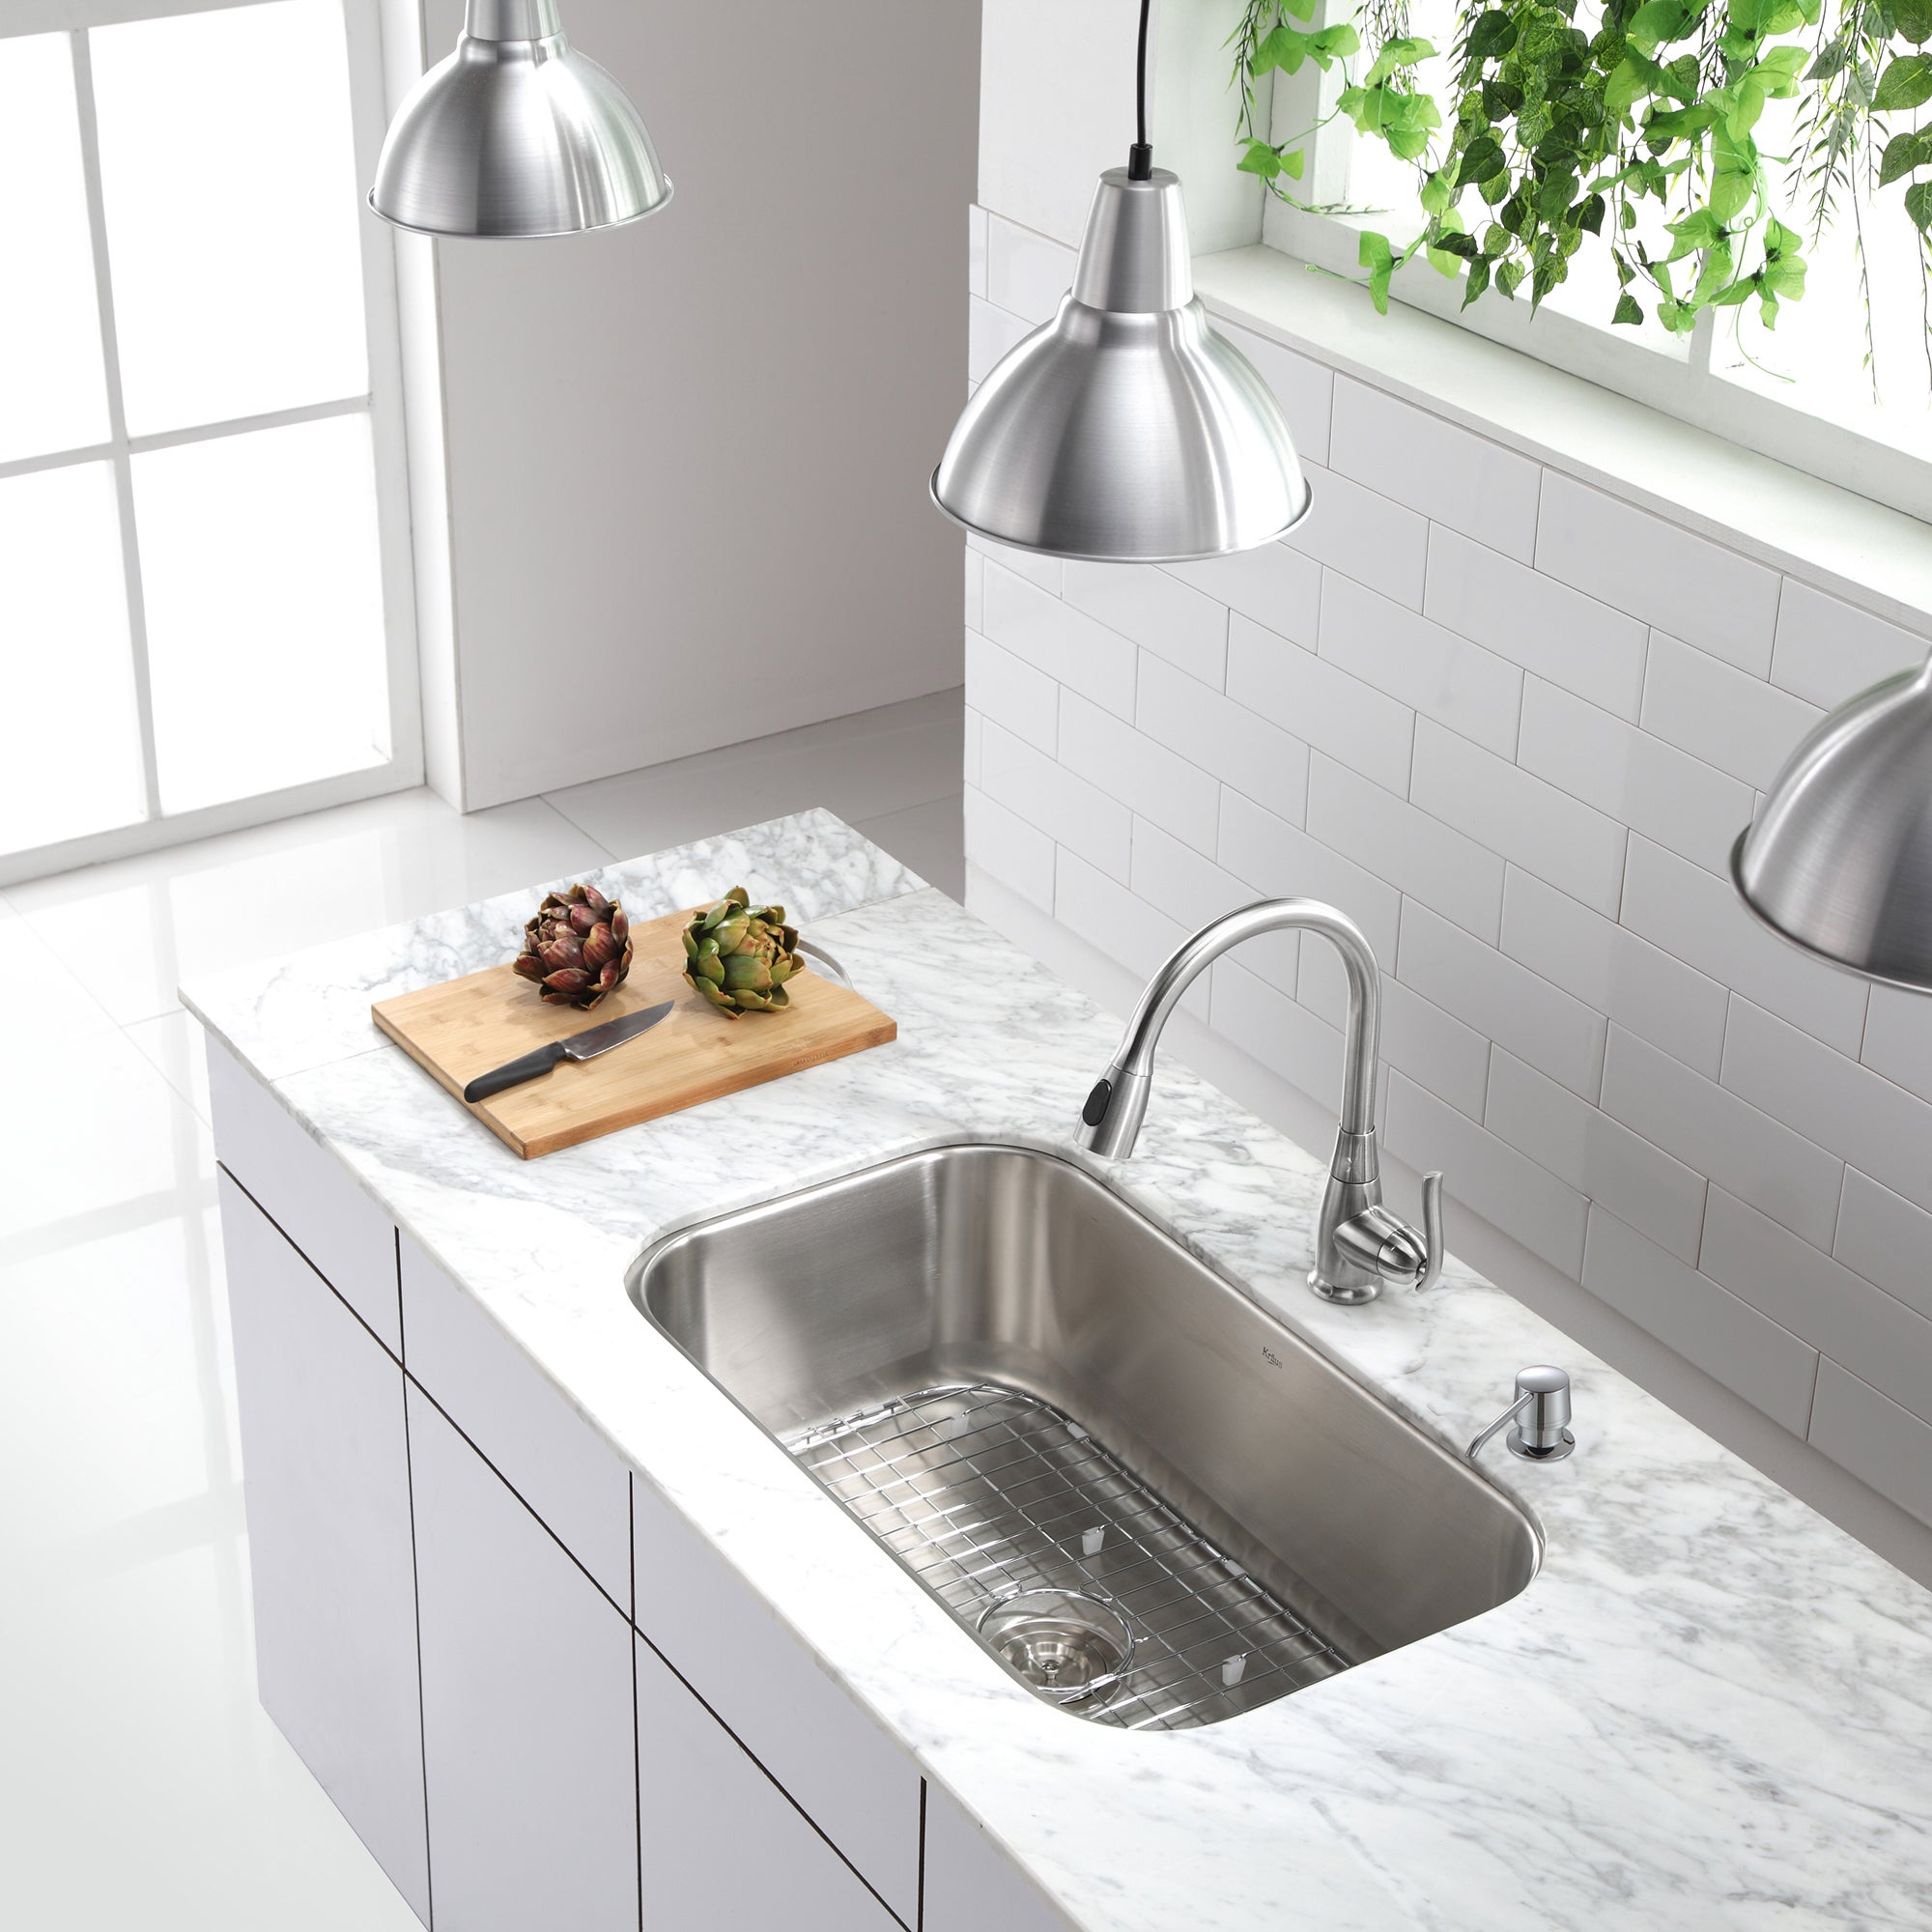 KRAUS Single-Handle Stainless Steel High Arch Kitchen Faucet with Pull Down  Dual-Function Sprayer in Chrome - Free Shipping Today - Overstock.com -  13827383